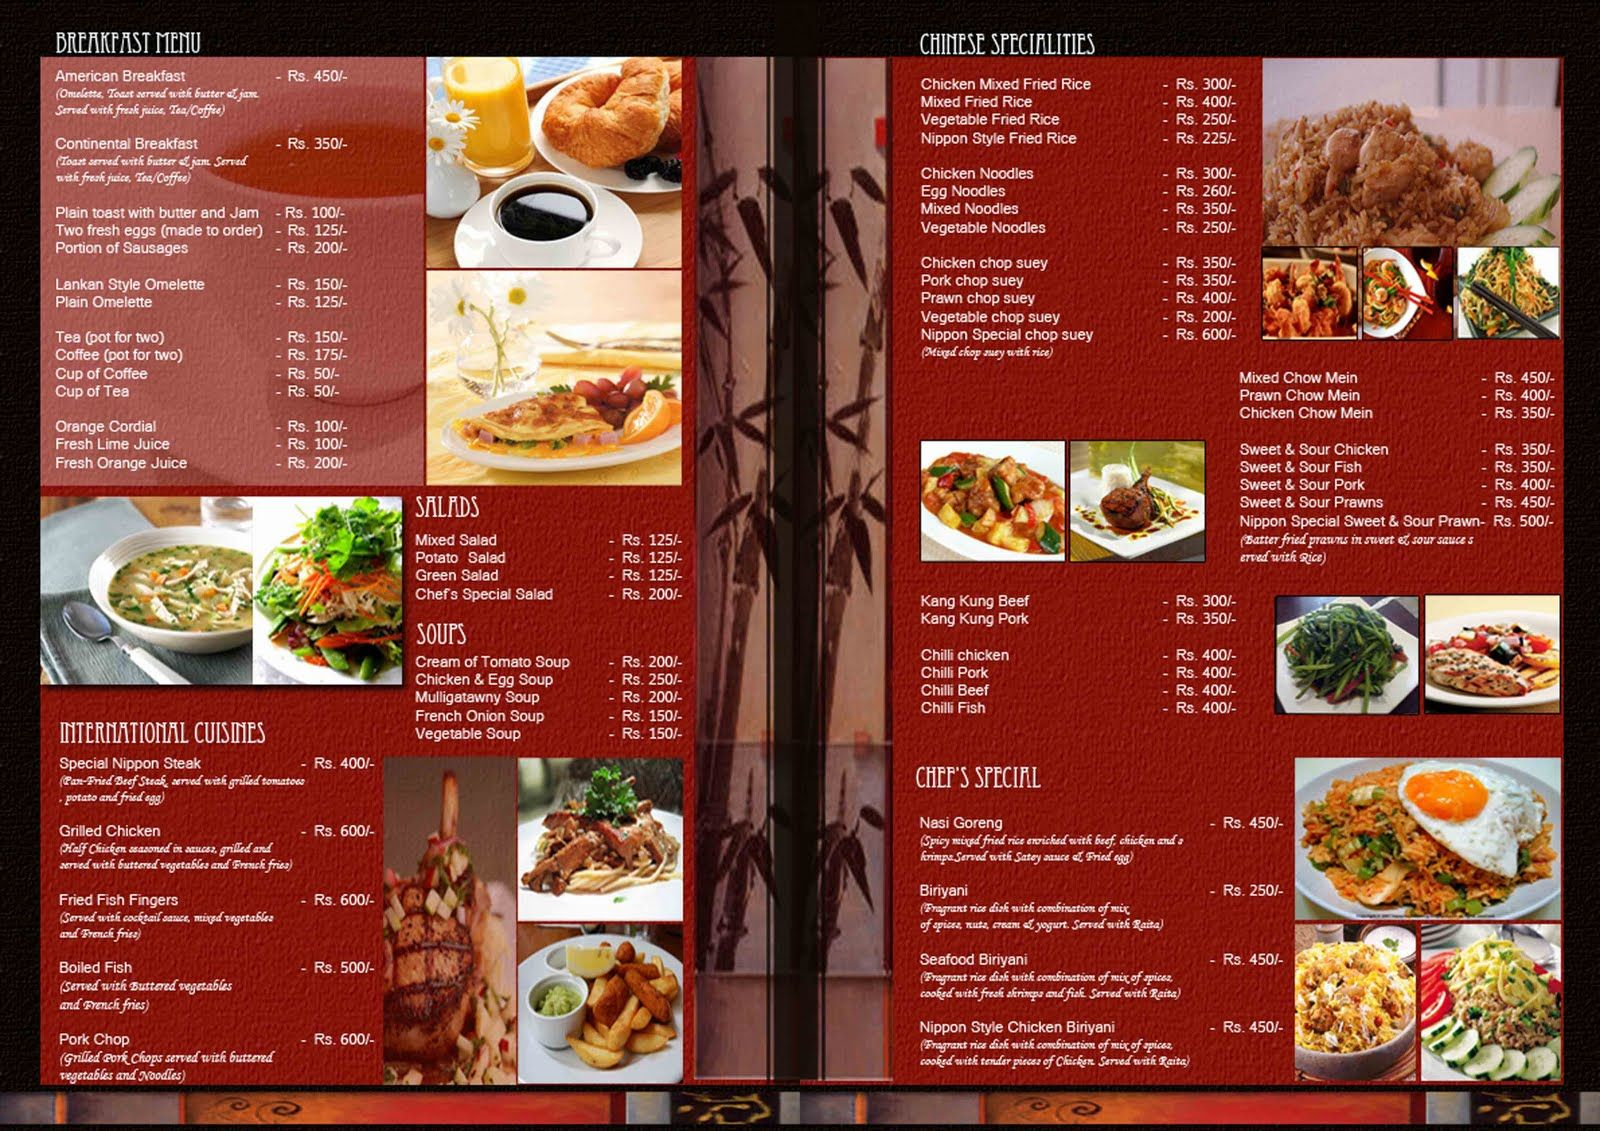 Restaurant Menu Design Ideas ranger snapshot restaurant app by peter kazmierczak menu designapp Oriental Restaurant Menu Design Ideas Restaurant Menu Design That Can Give You Inspiration Home Design